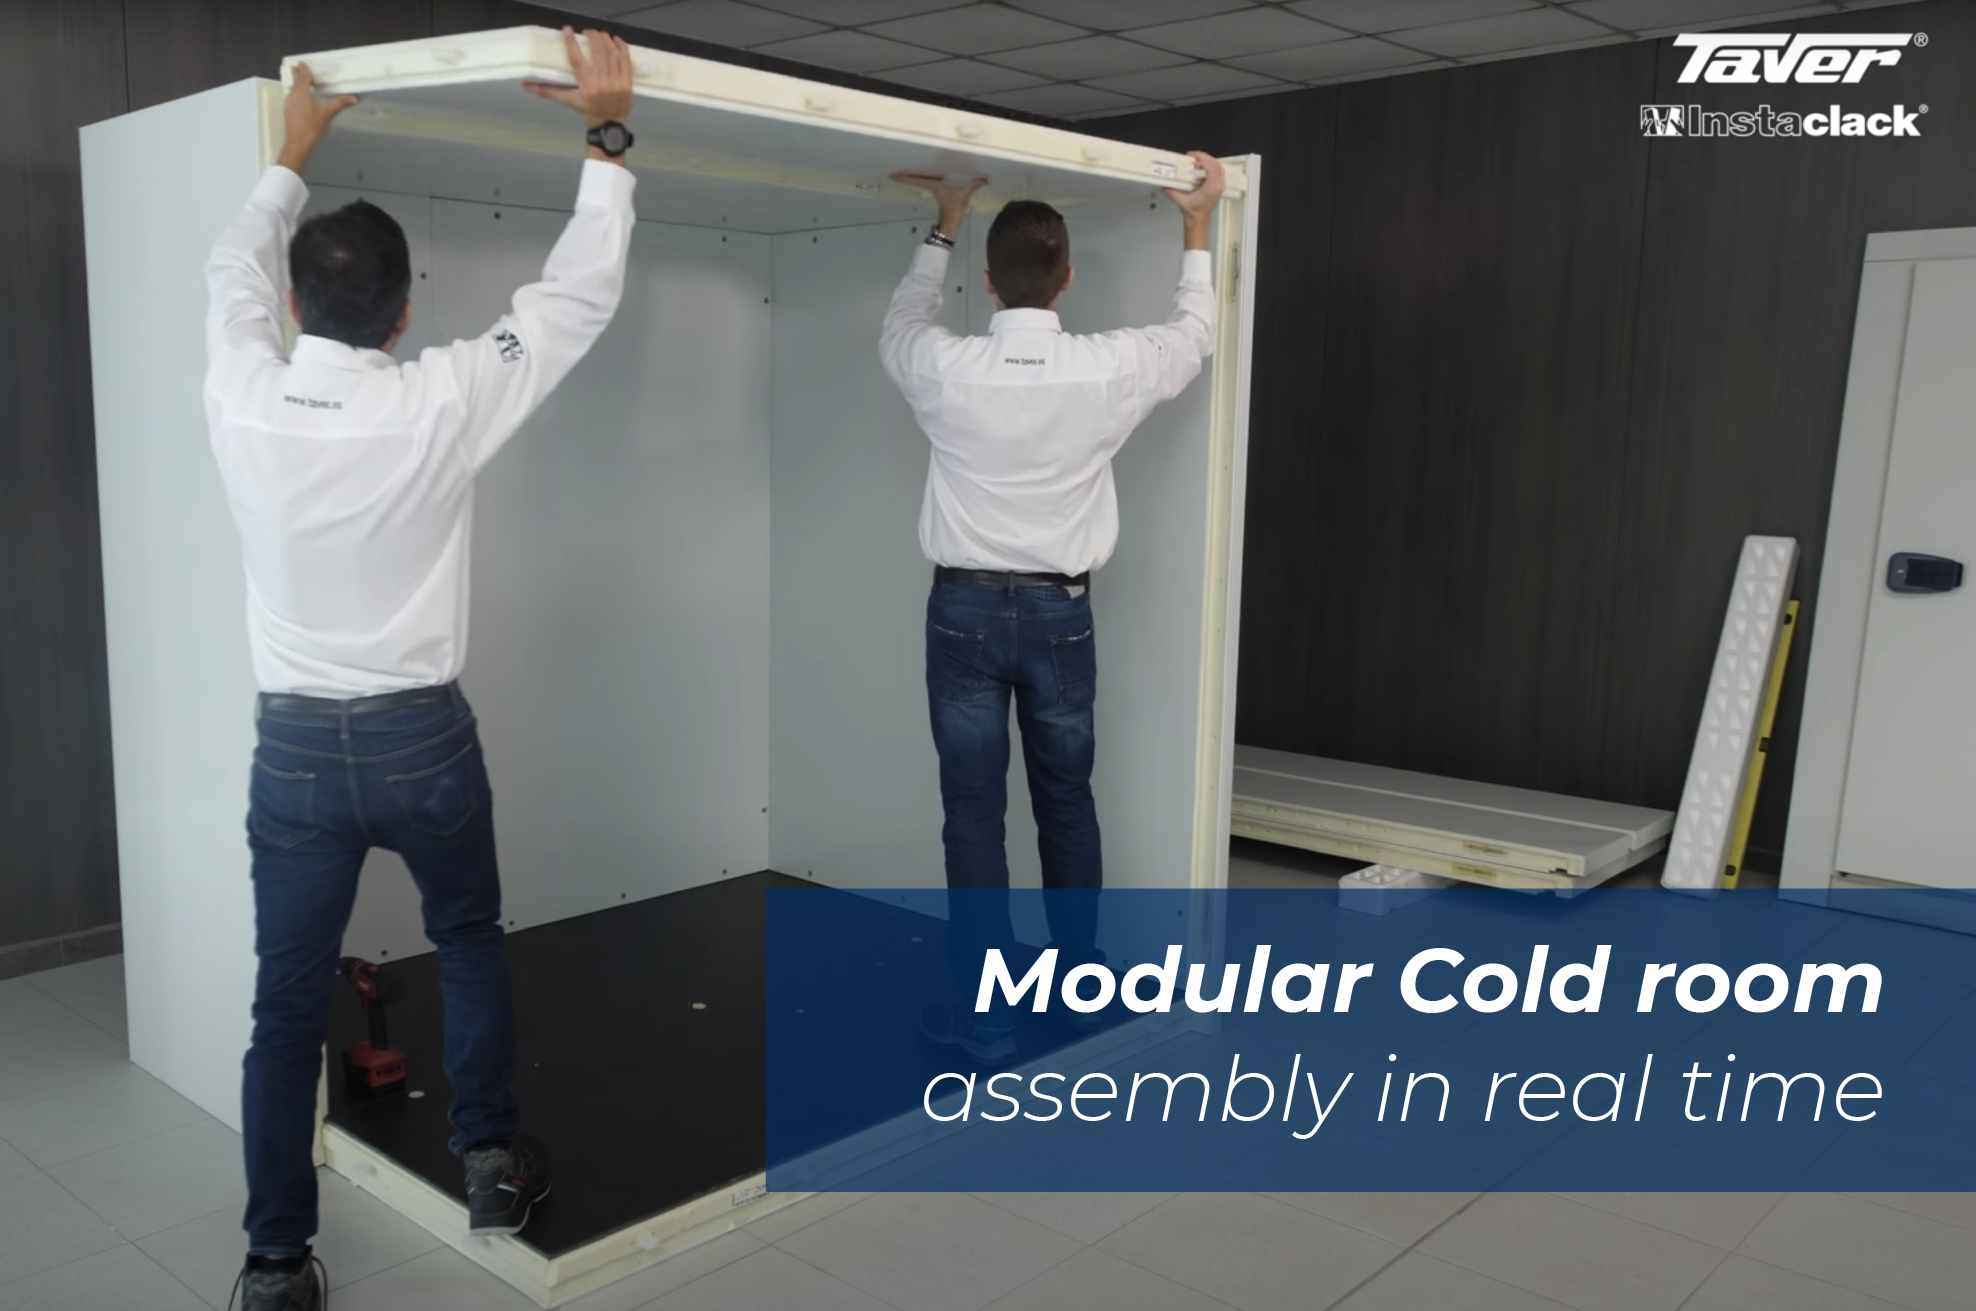 SEVEN MINUTES IS ENOUGH TO ASSEMBLE THE STRUCTURE OF A MODULAR REFRIGERATOR CHAMBER 10